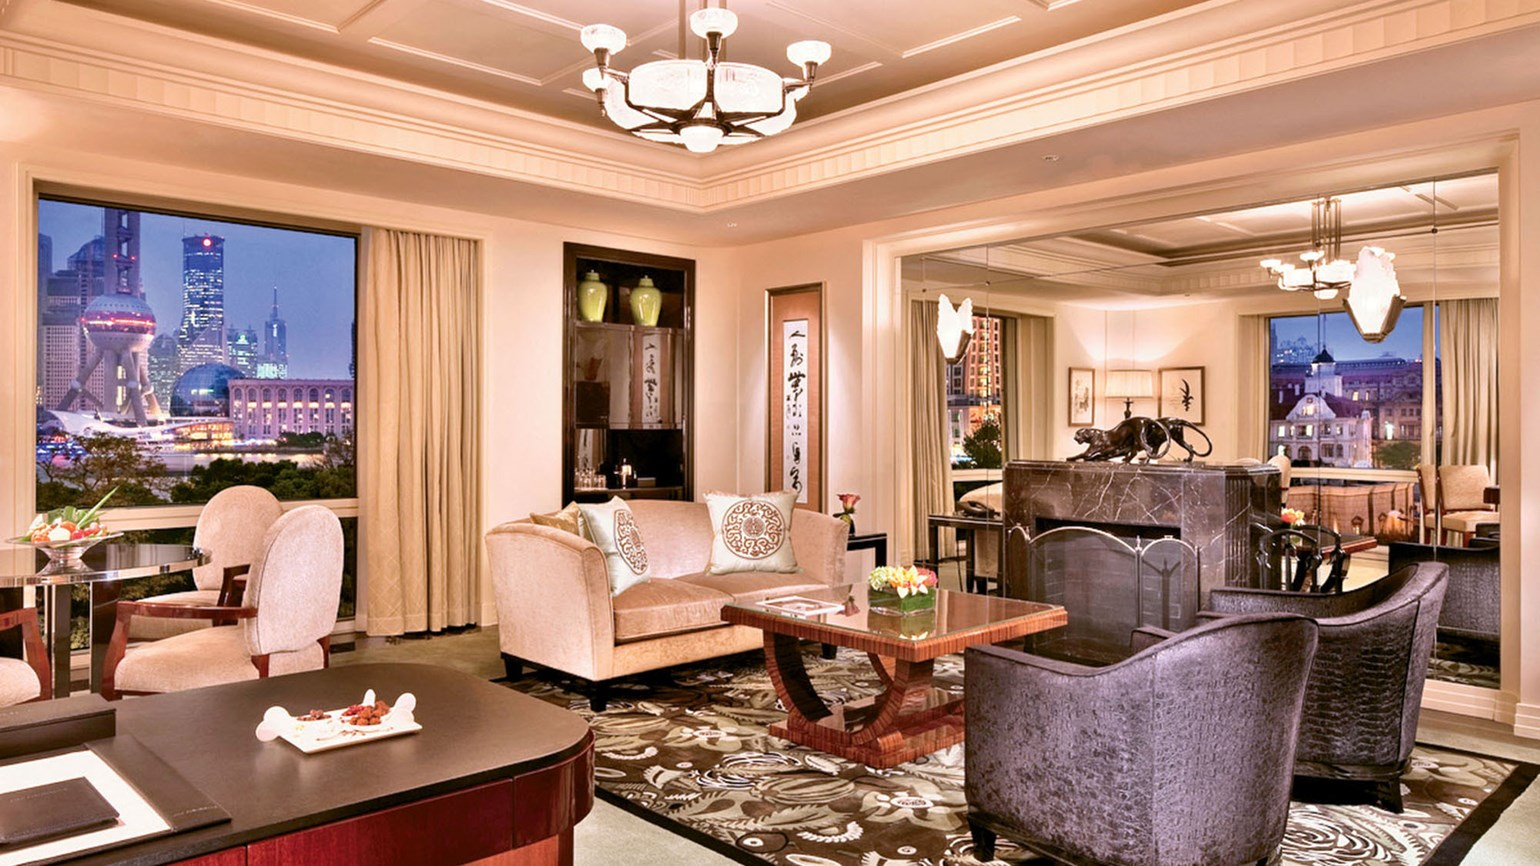 Exquisite luxury at the Peninsula Shanghai